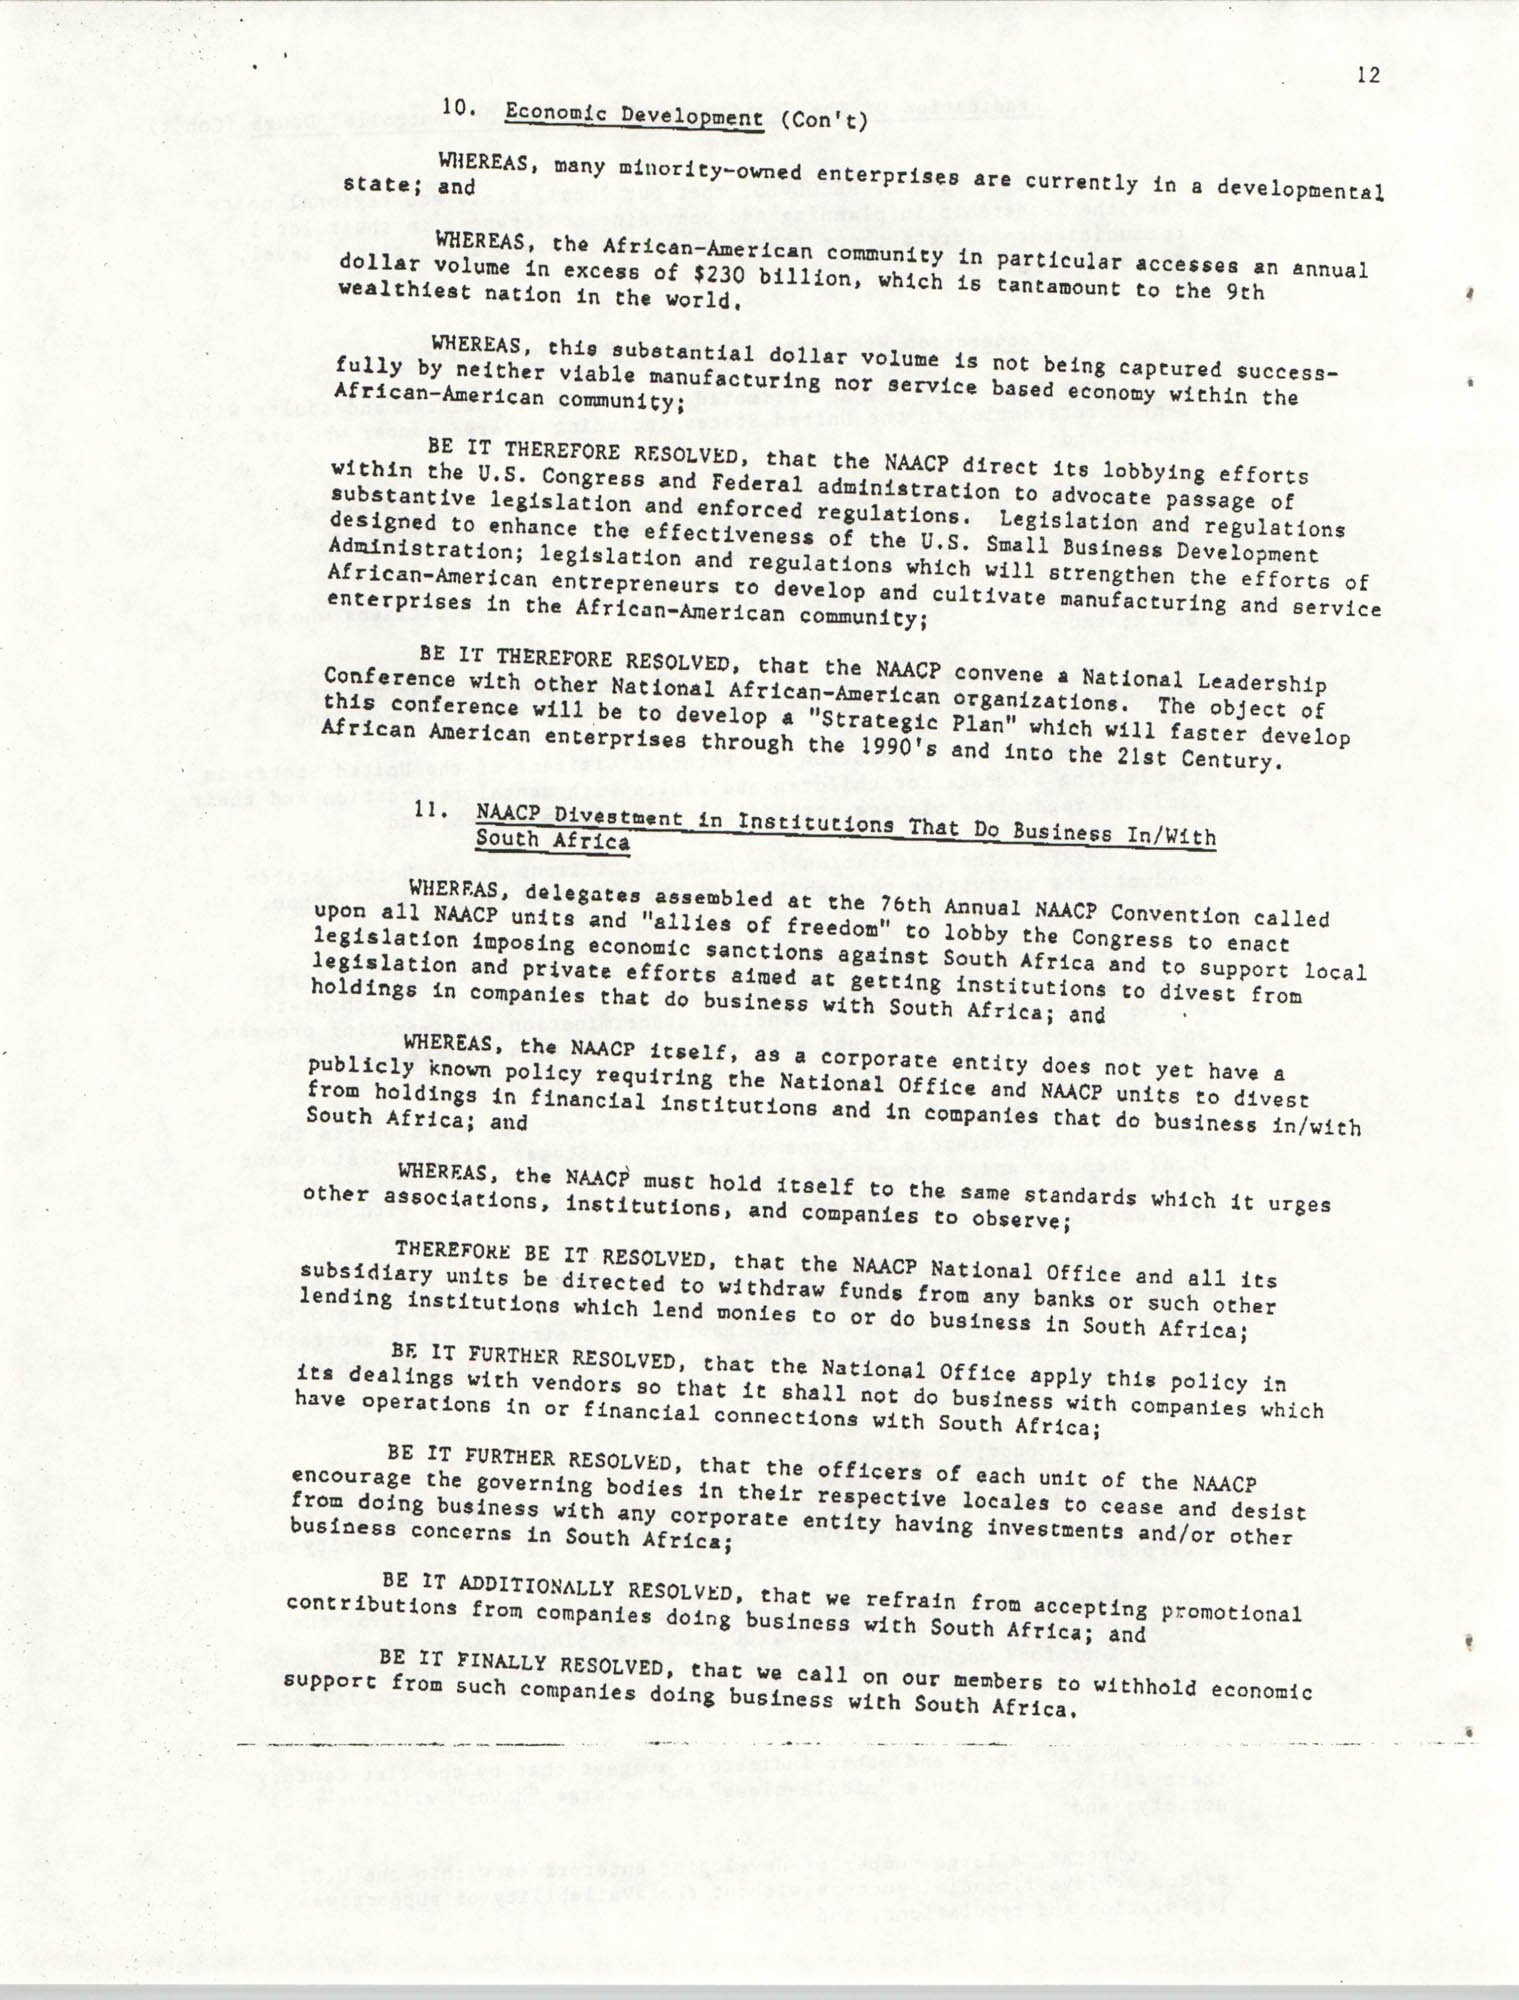 Resolutions Submitted Under Article X, Section 2 of the Constitution of the NAACP, Page 12